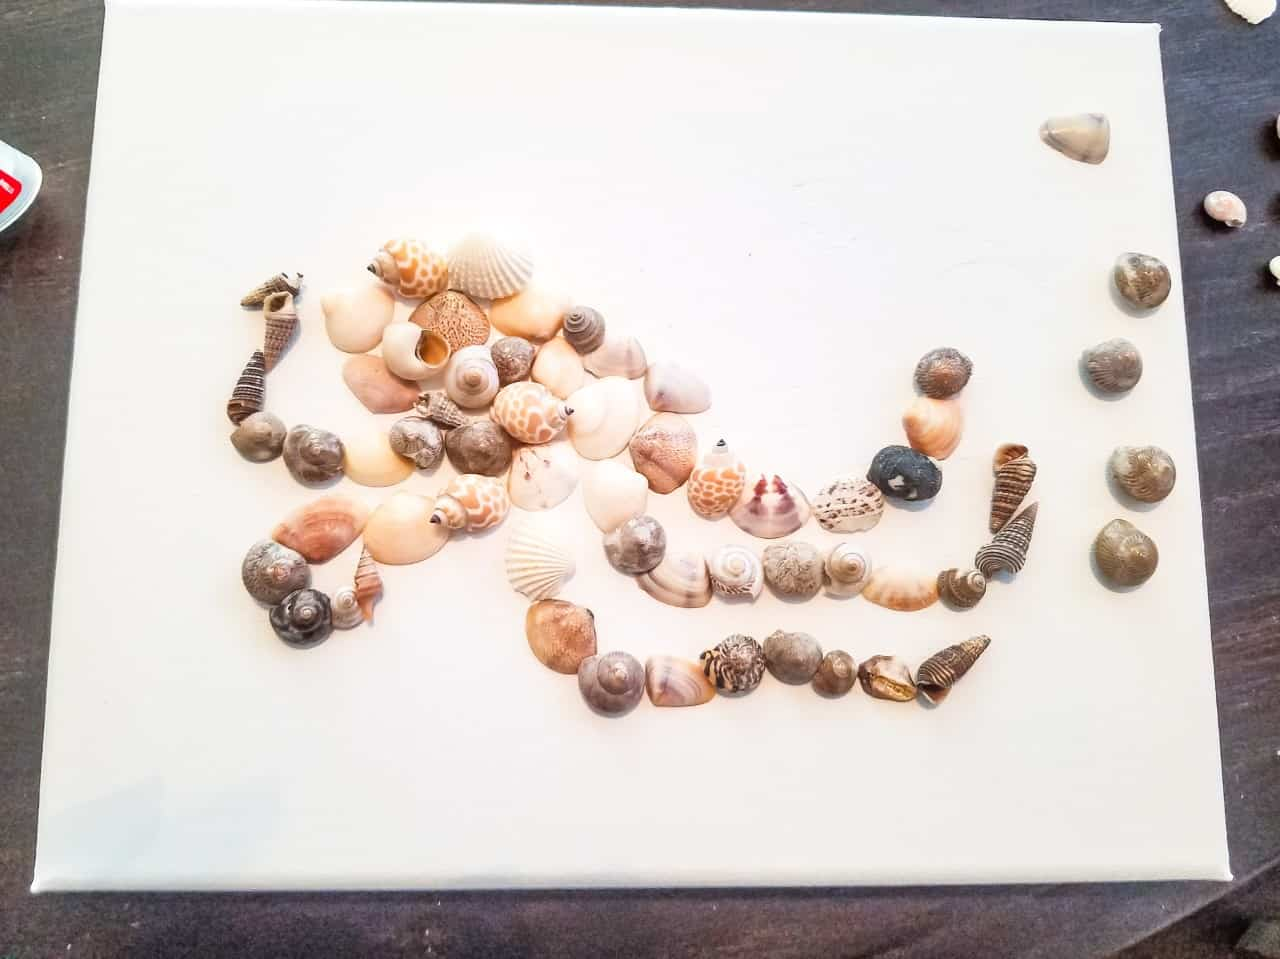 Gluing shells onto canvas.